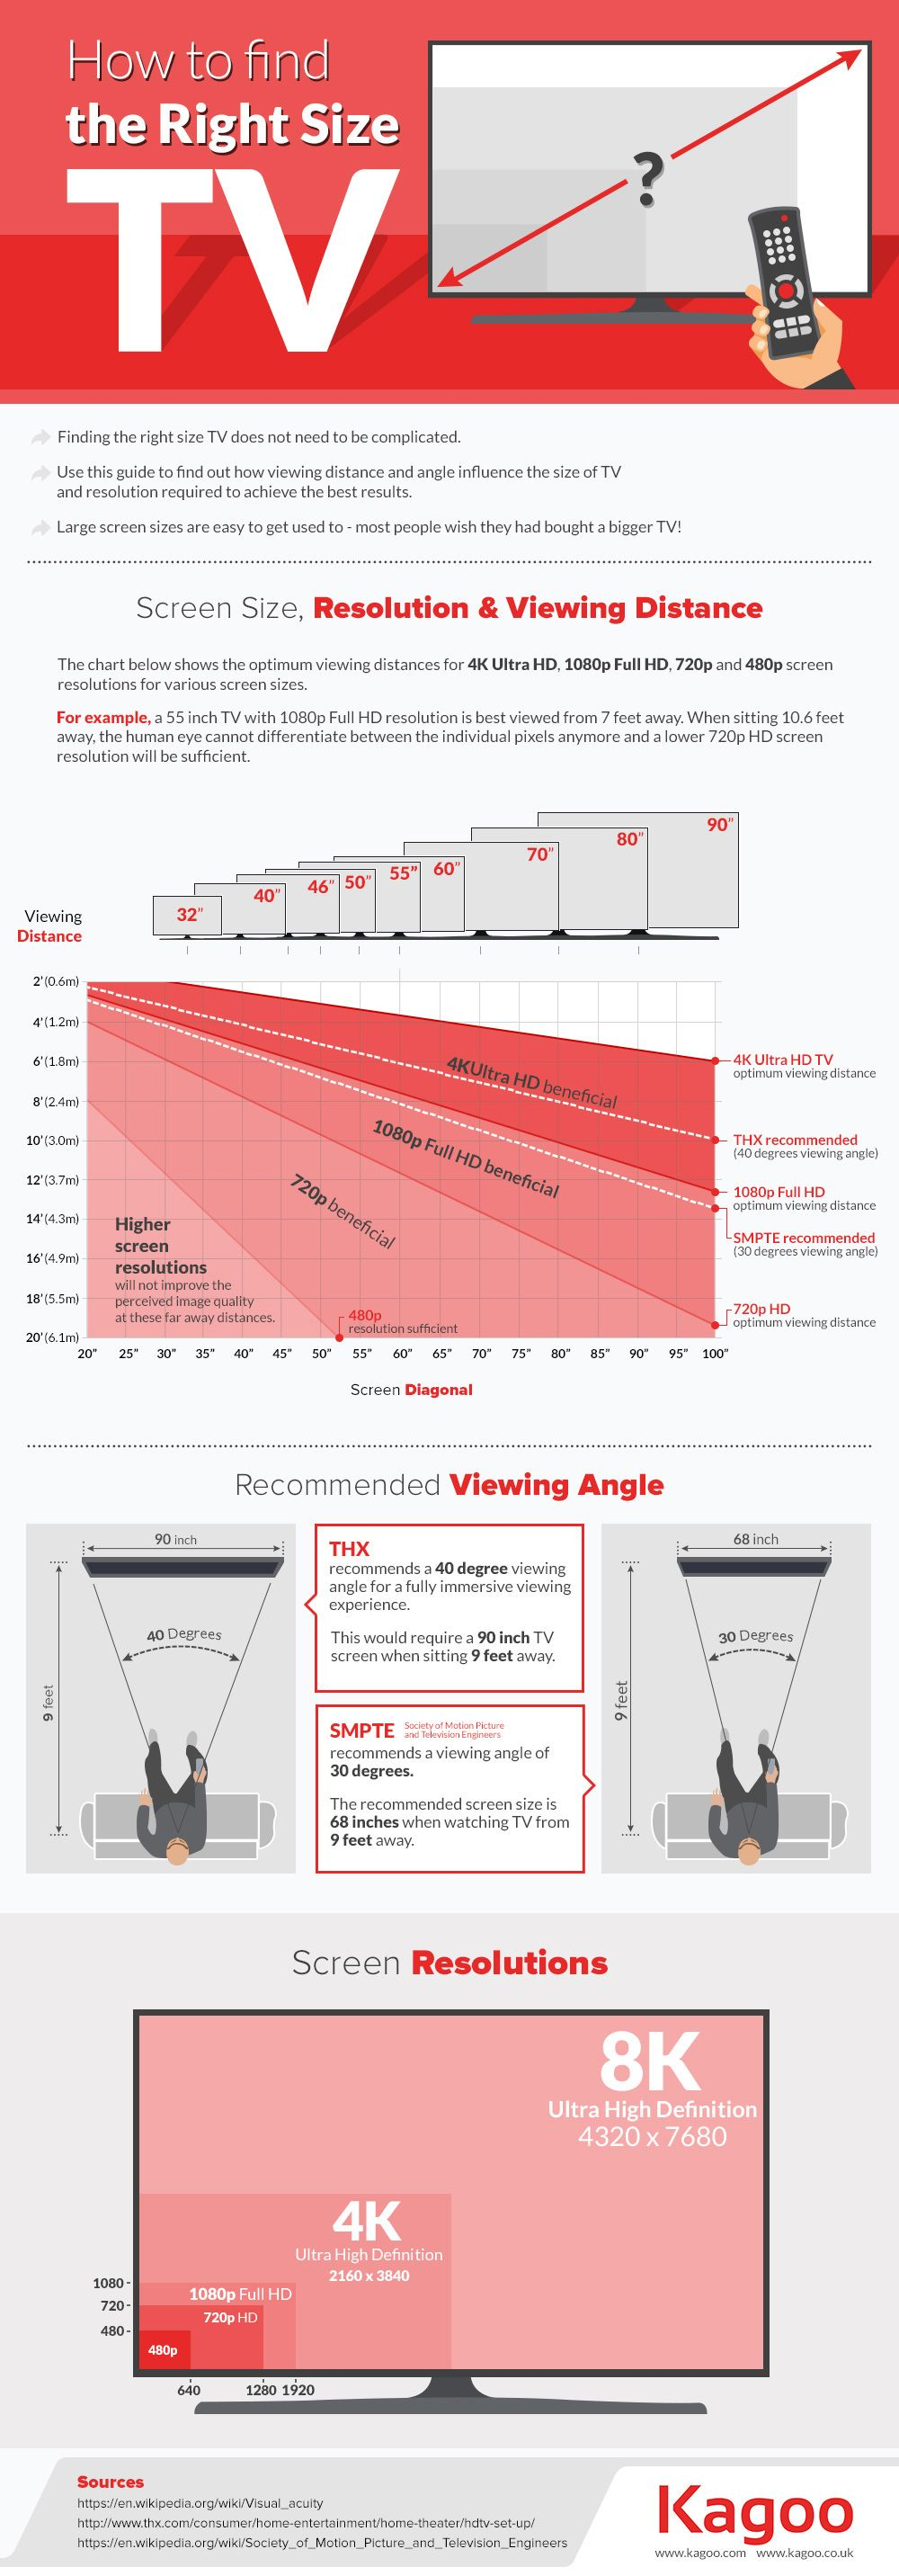 Find right size TV infographic 605px